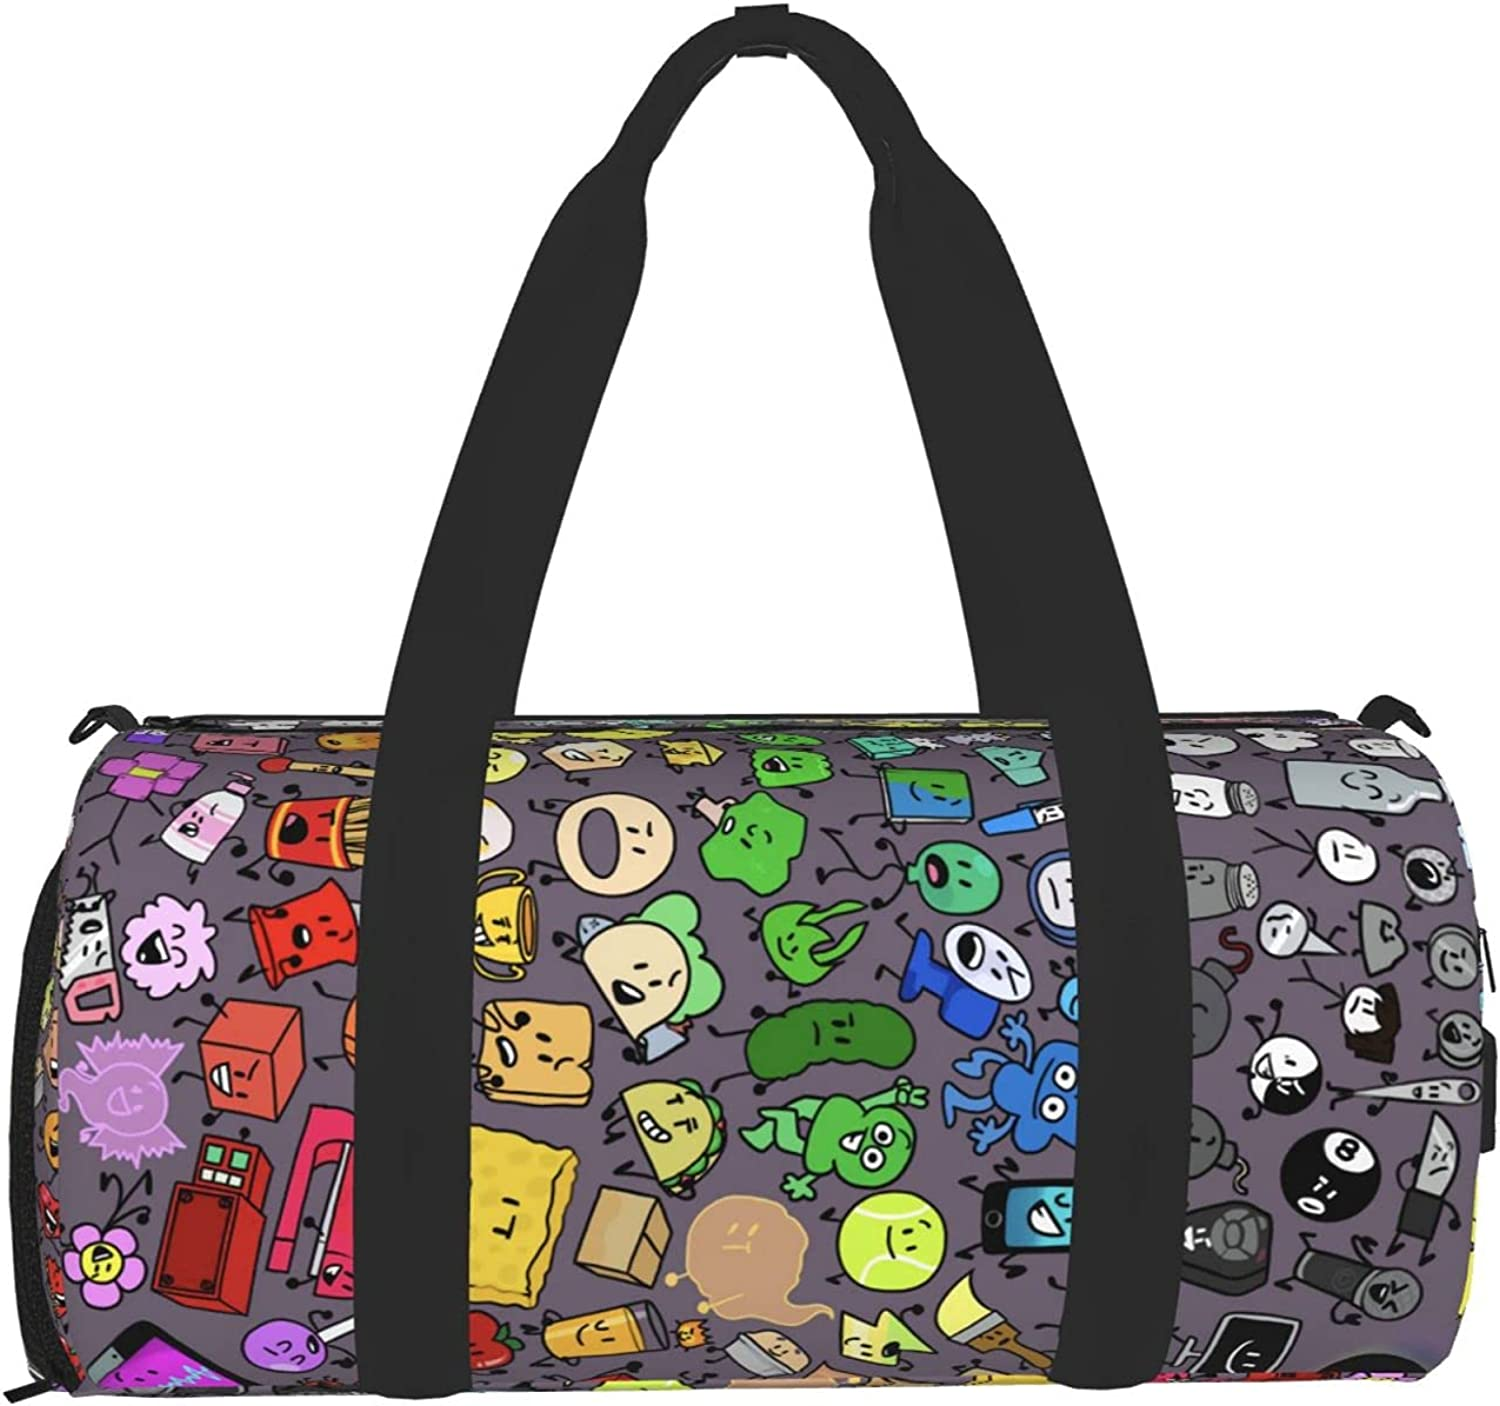 Battle-For-Bfdi Super popular specialty store Sports Gym Bag Travel Wet With Duffel A Sale special price